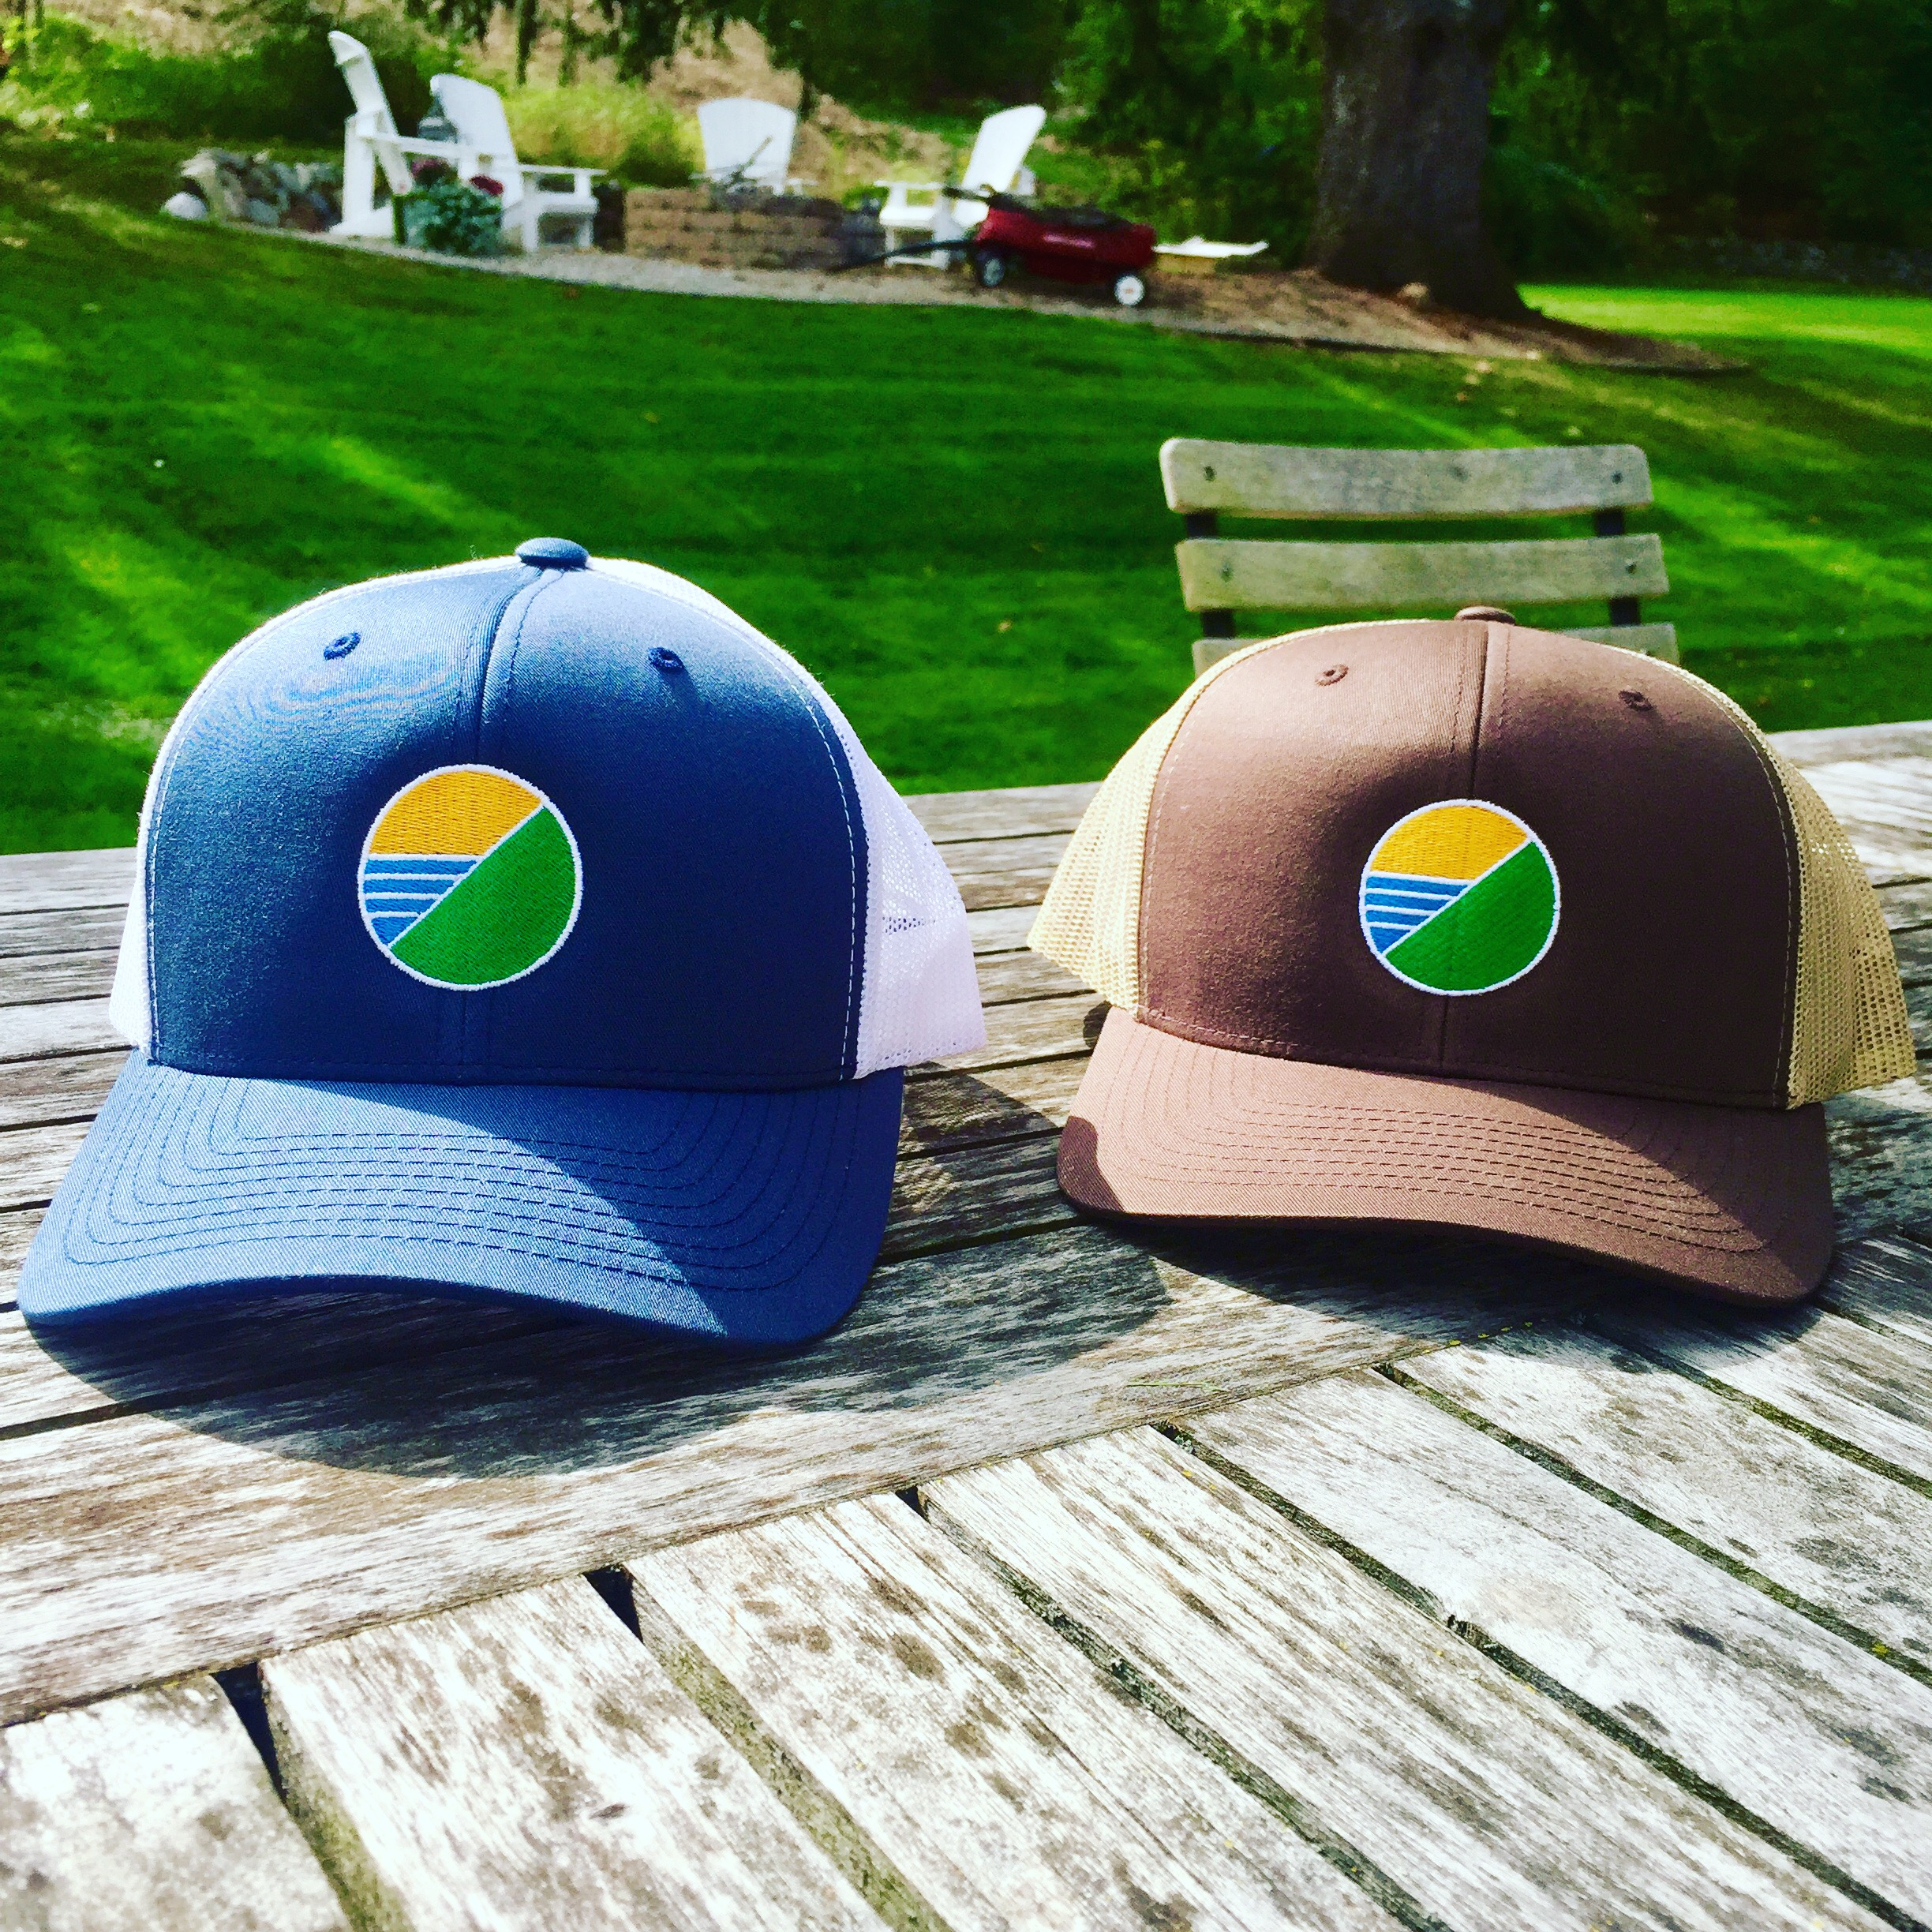 Men's Collection - Hats and tees for outdoor enthusiasts.